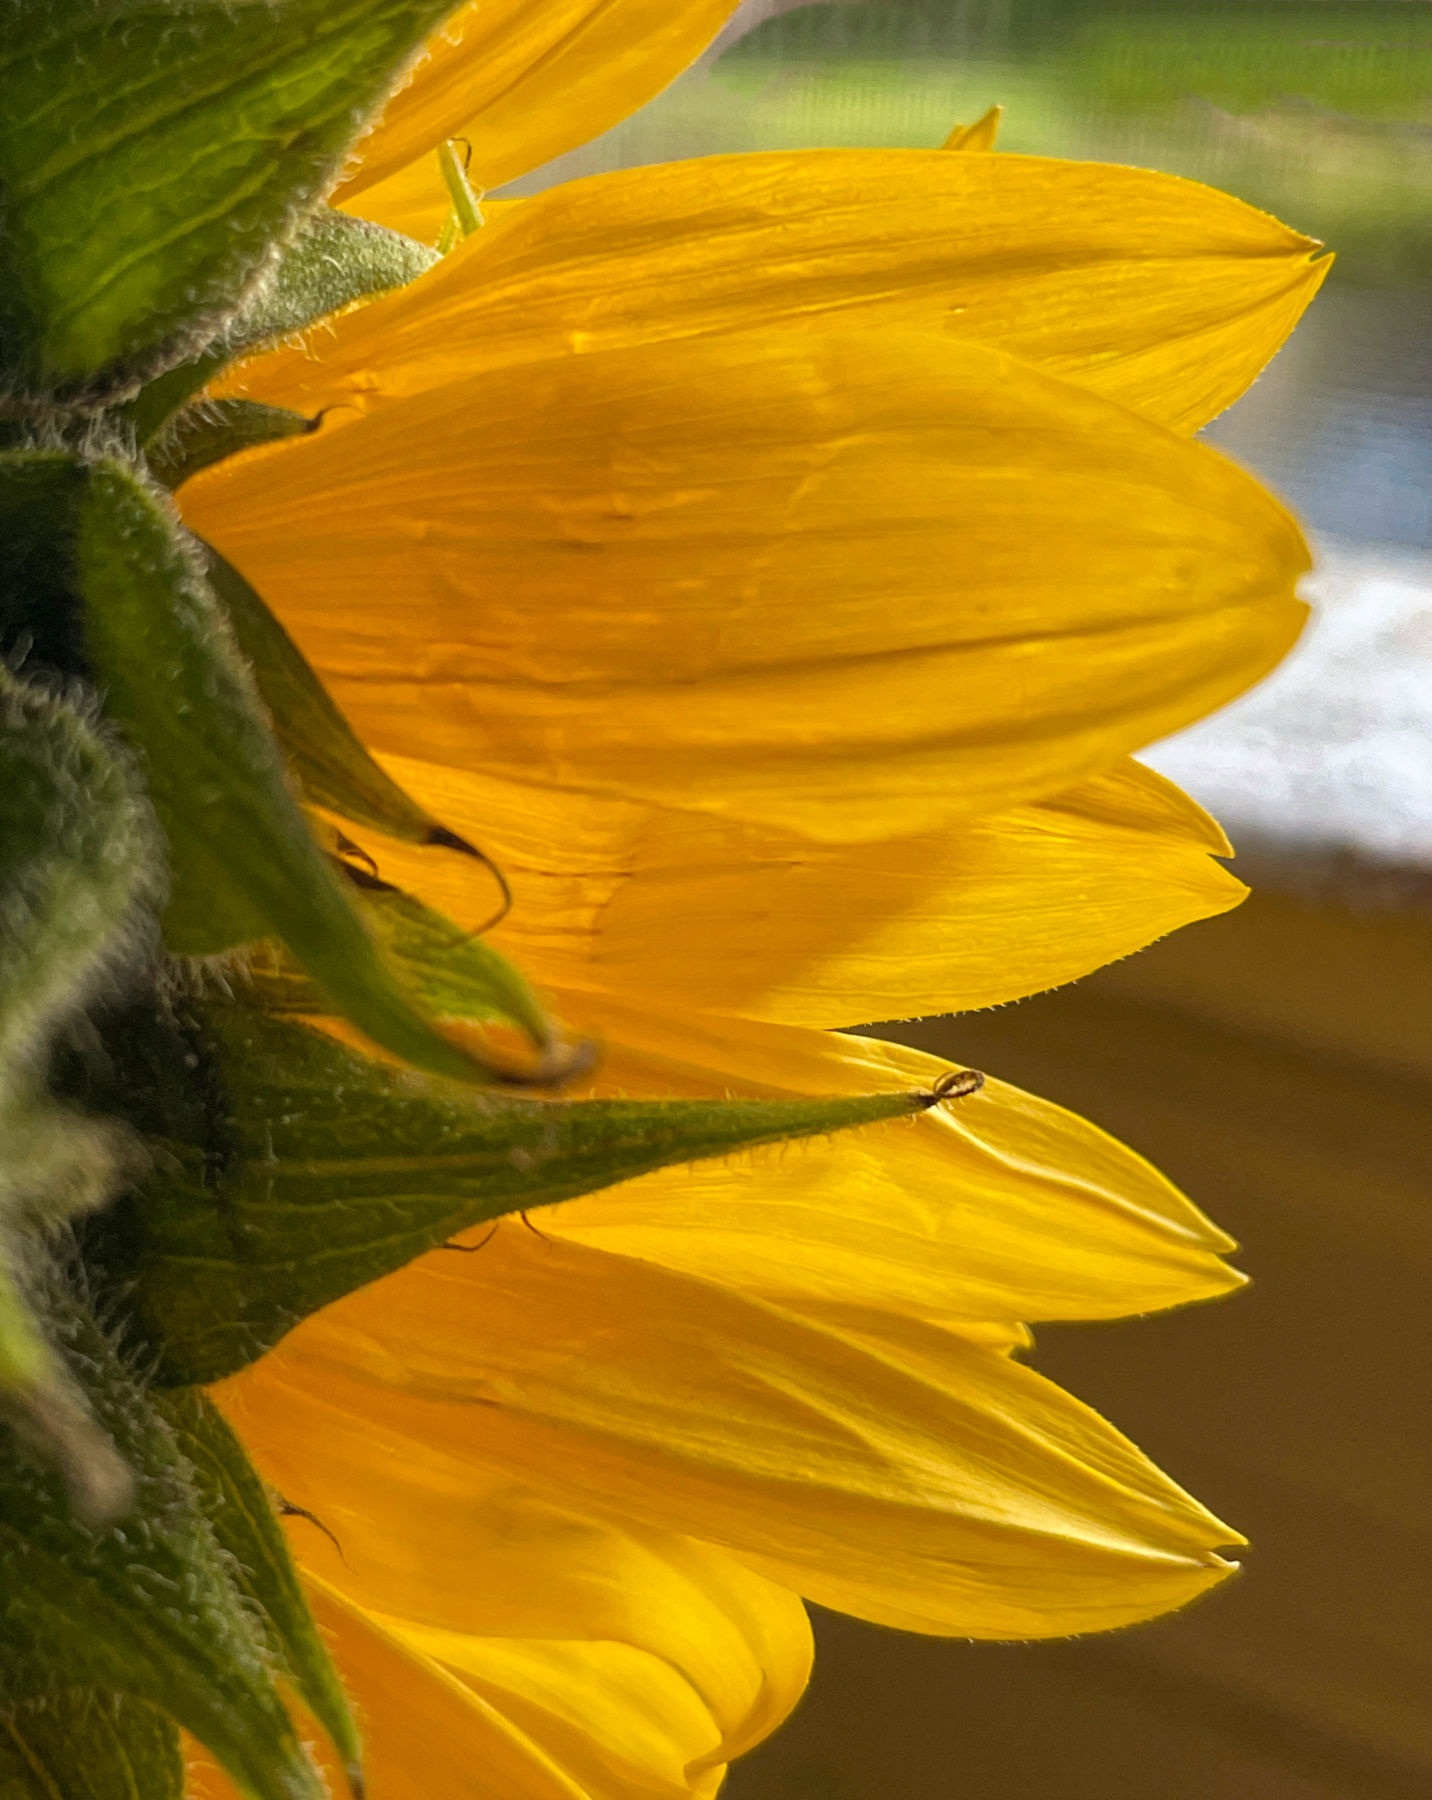 Sunflower Looking Out the Window.jpeg